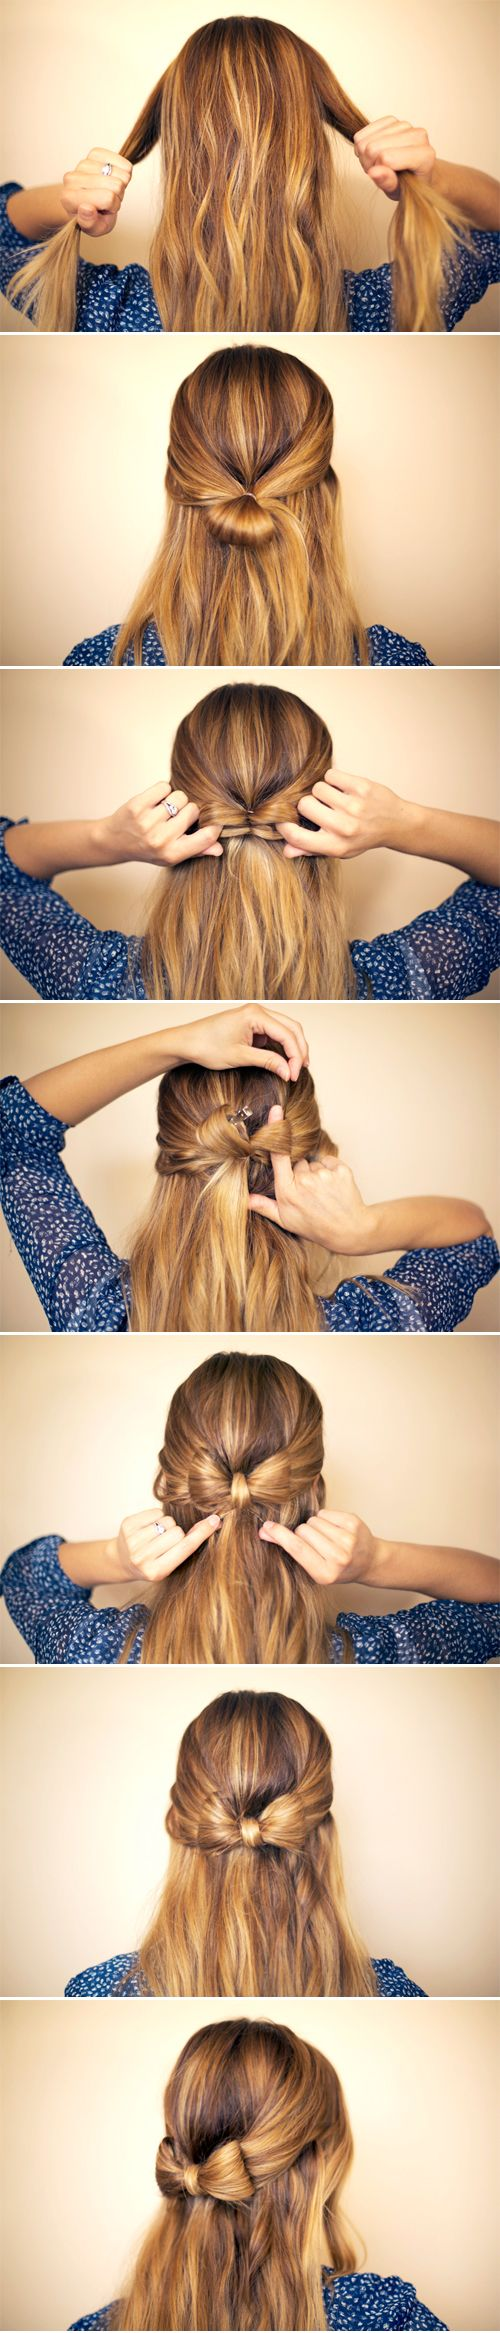 how to: hair bow (what's the betting this is harder to do that it looks!)